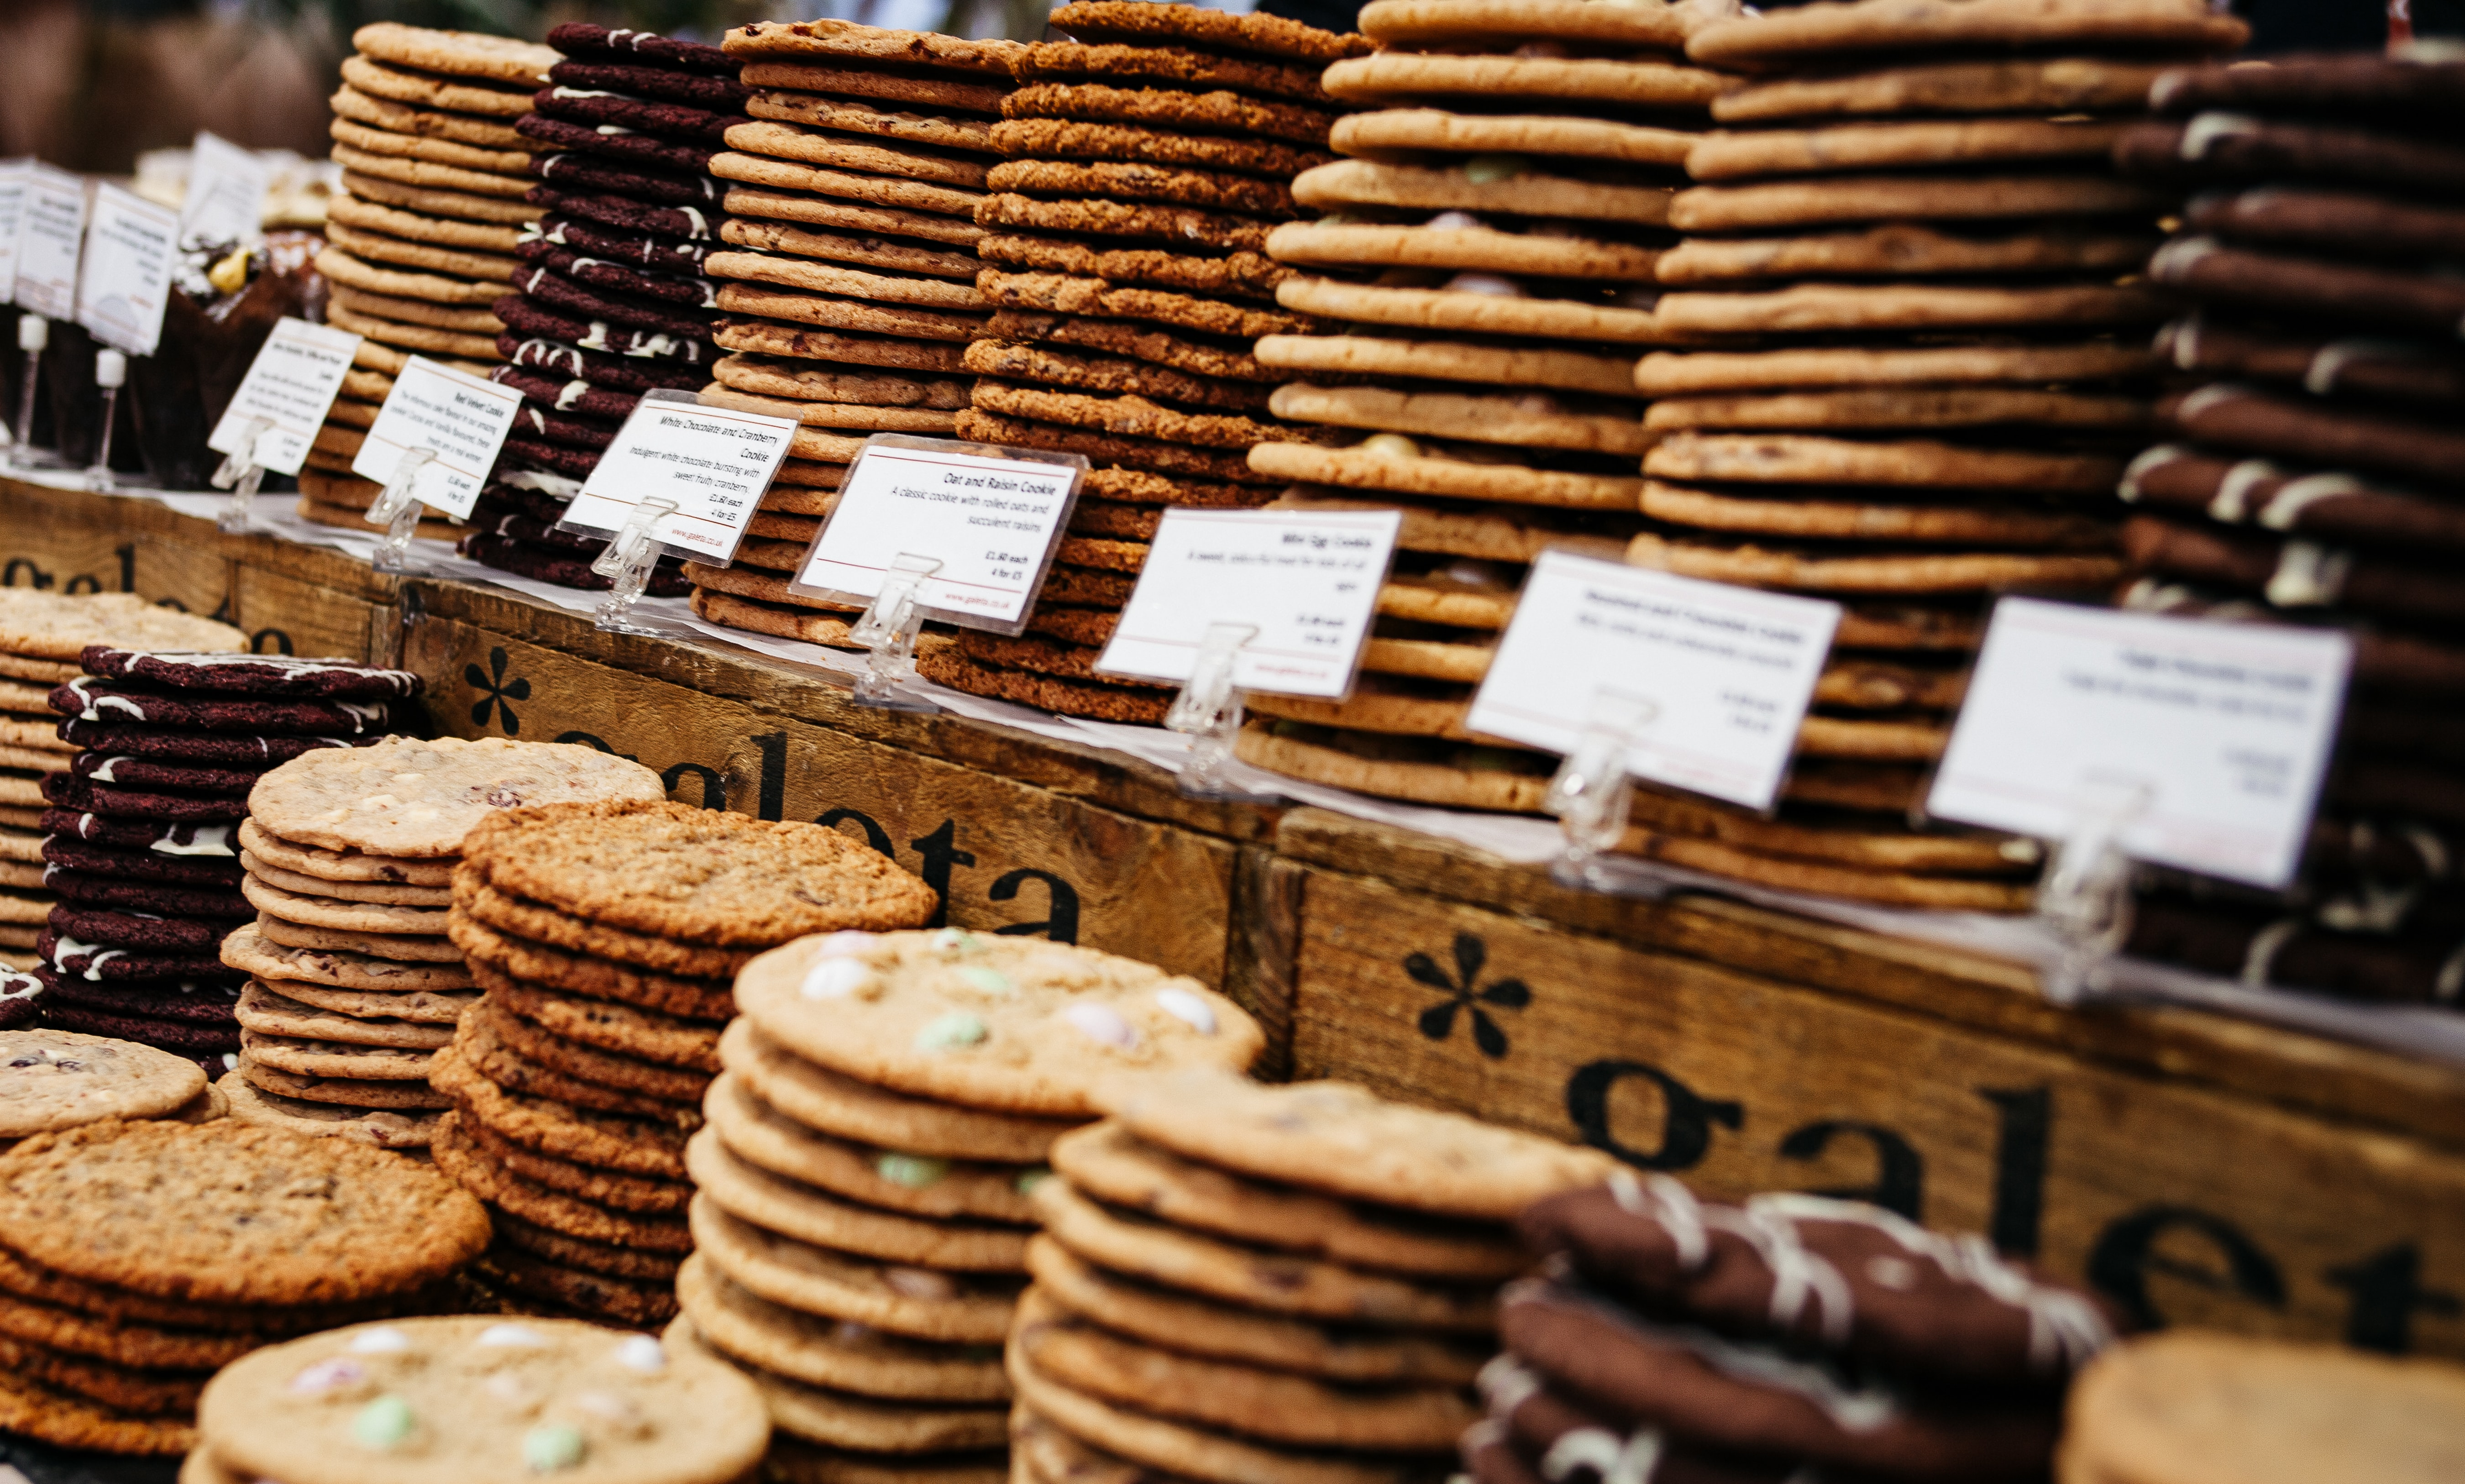 A display of several different kinds of cookies at a bakery